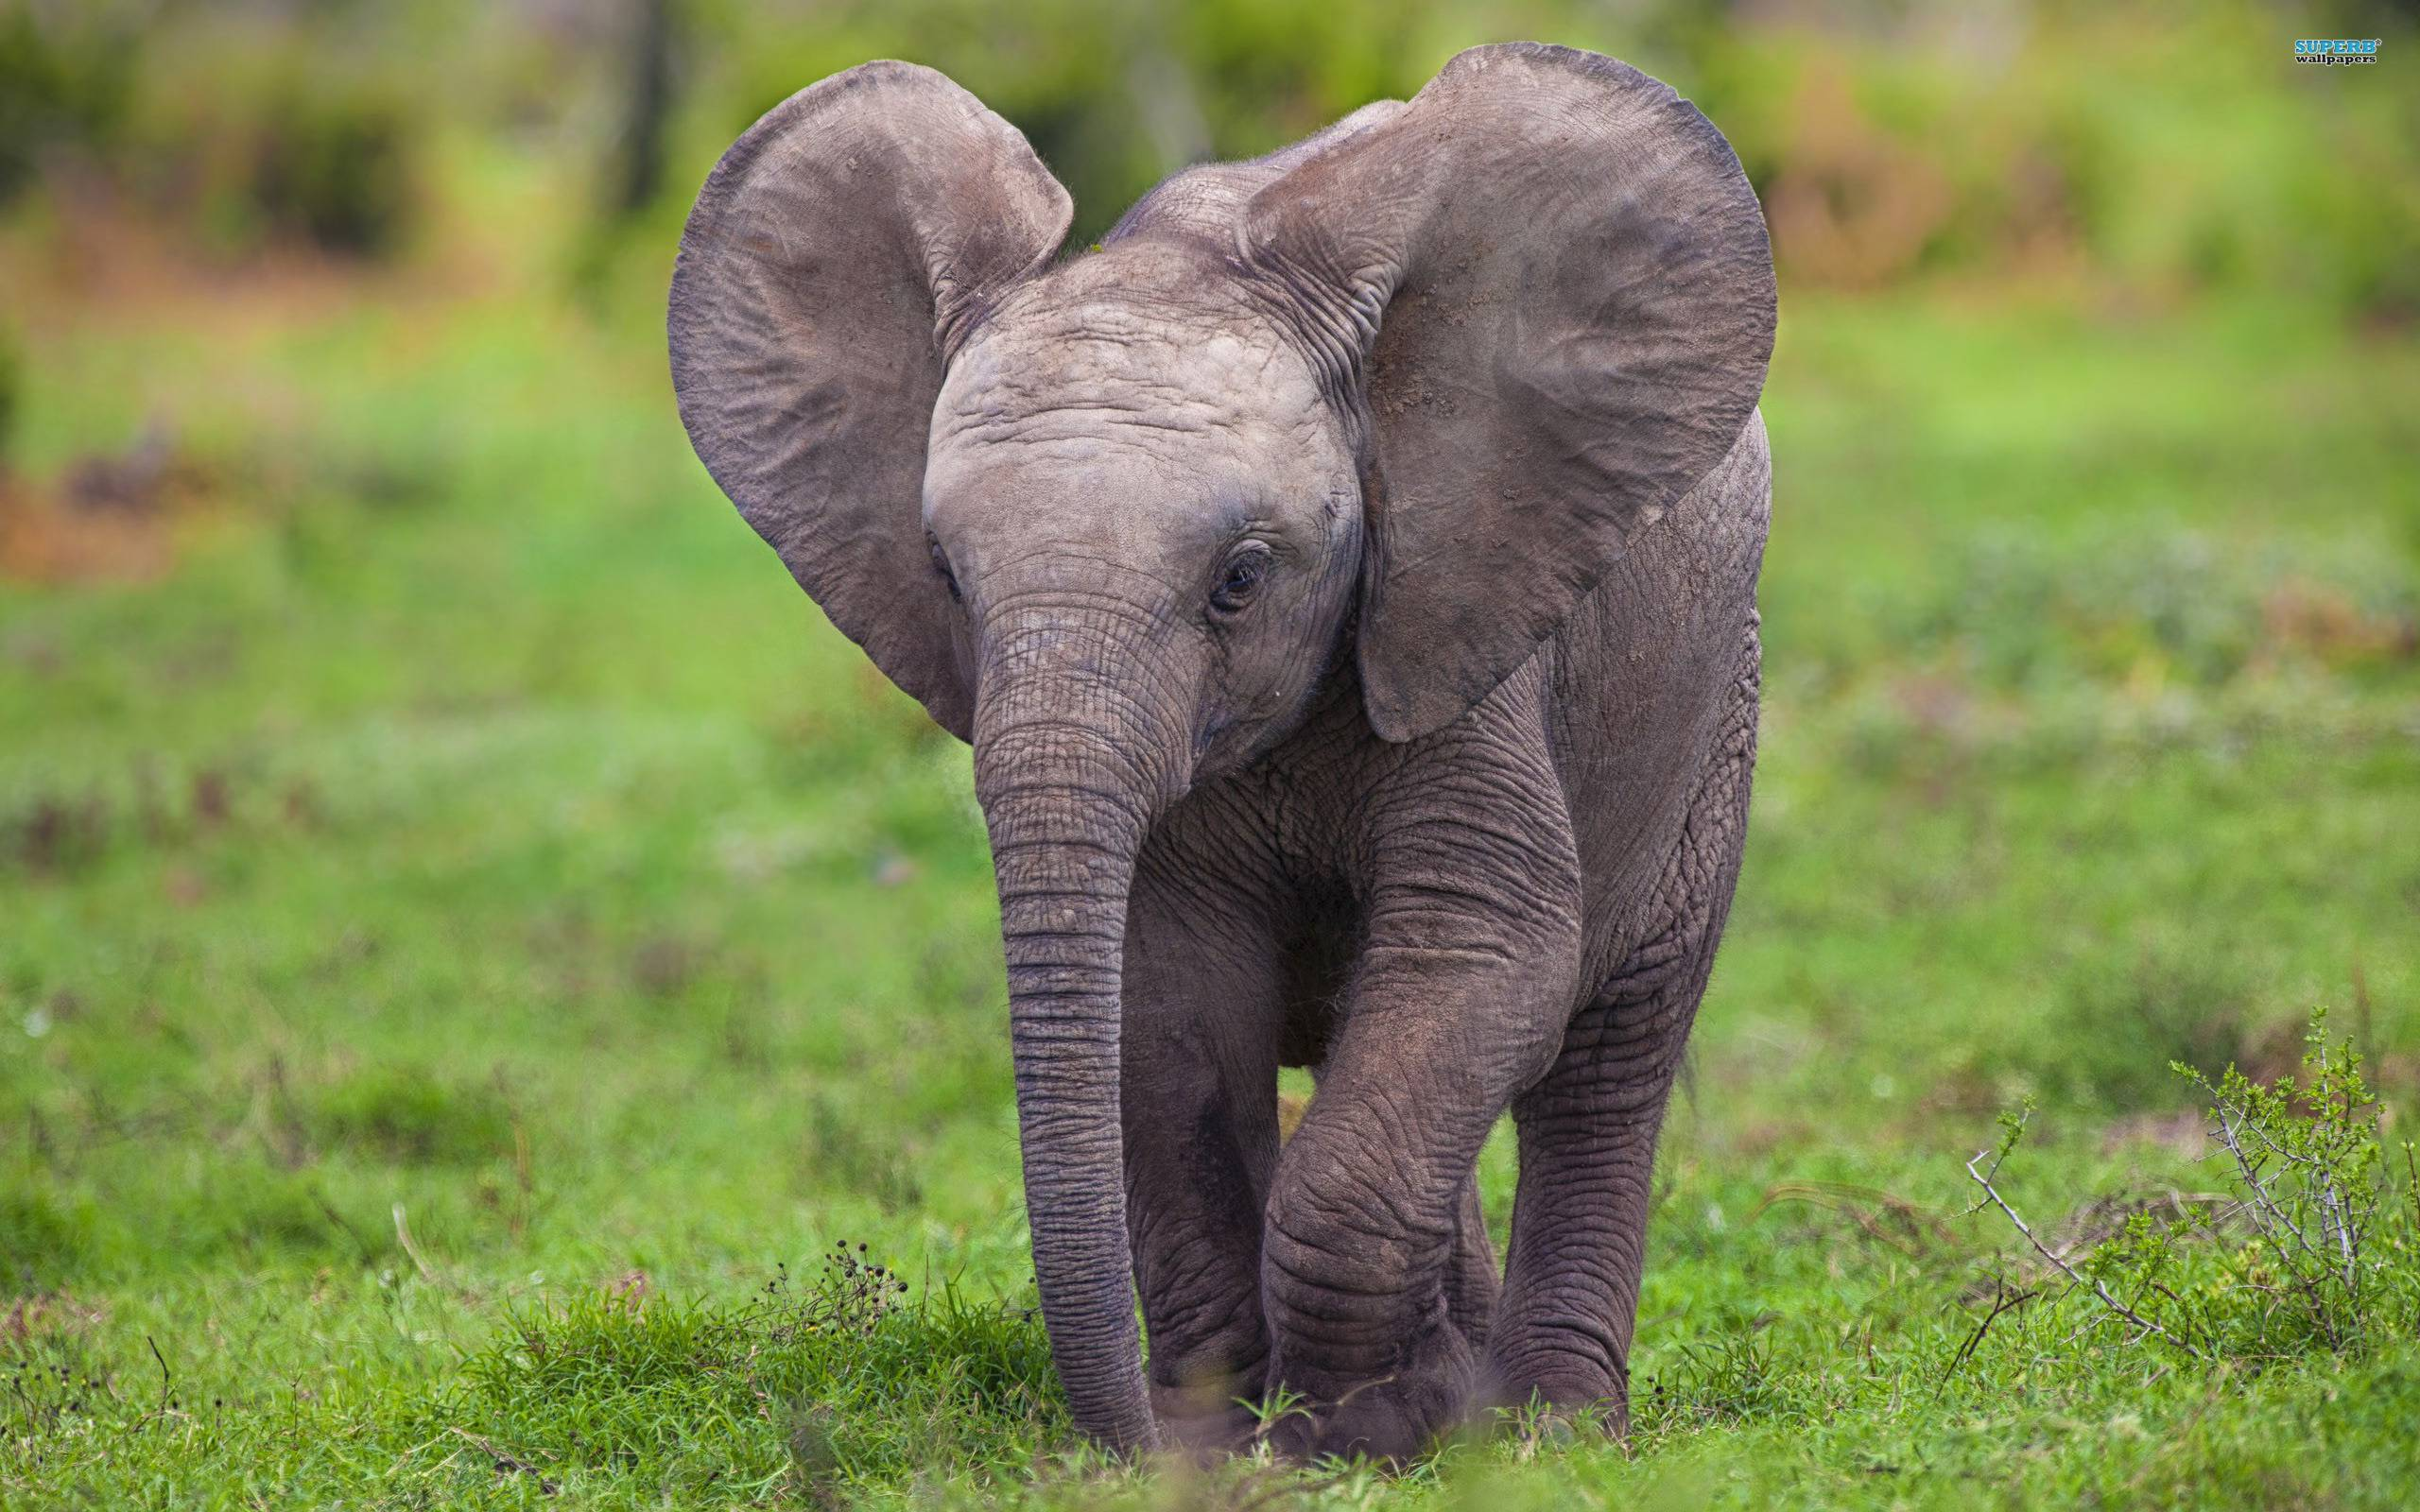 Wallpaper download elephant - Free Download 89 Baby Animal Wallpaper Baby Elephant Wallpaper